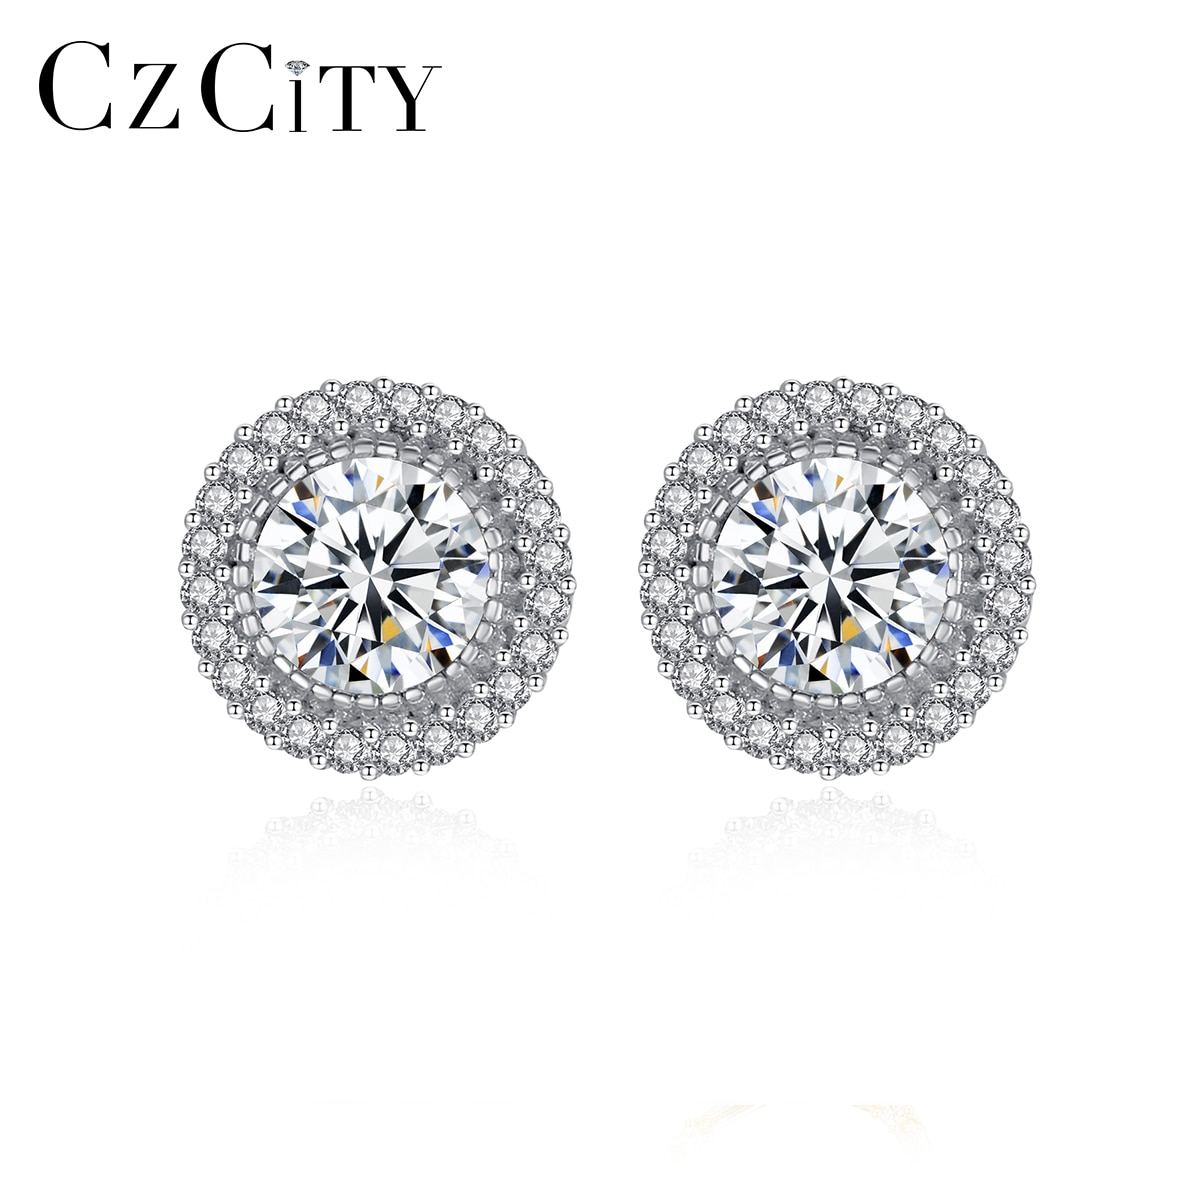 CZCITY Real 925 Sterling Silver Simple Round Shiny Stud Earrings for Women Classic Clear CZ Stone Ti